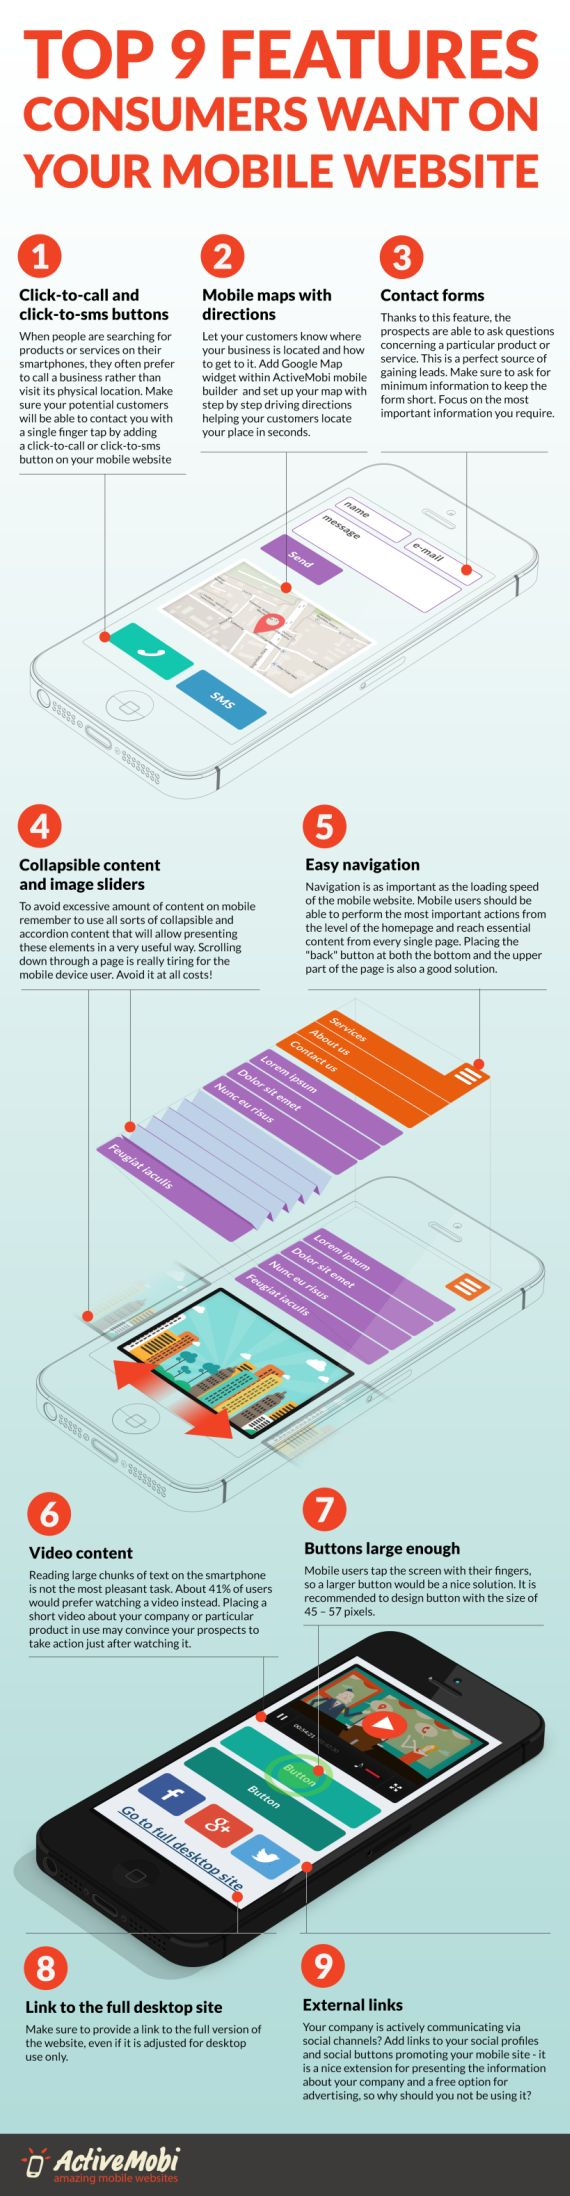 Important-Features-for-Mobile-Sites